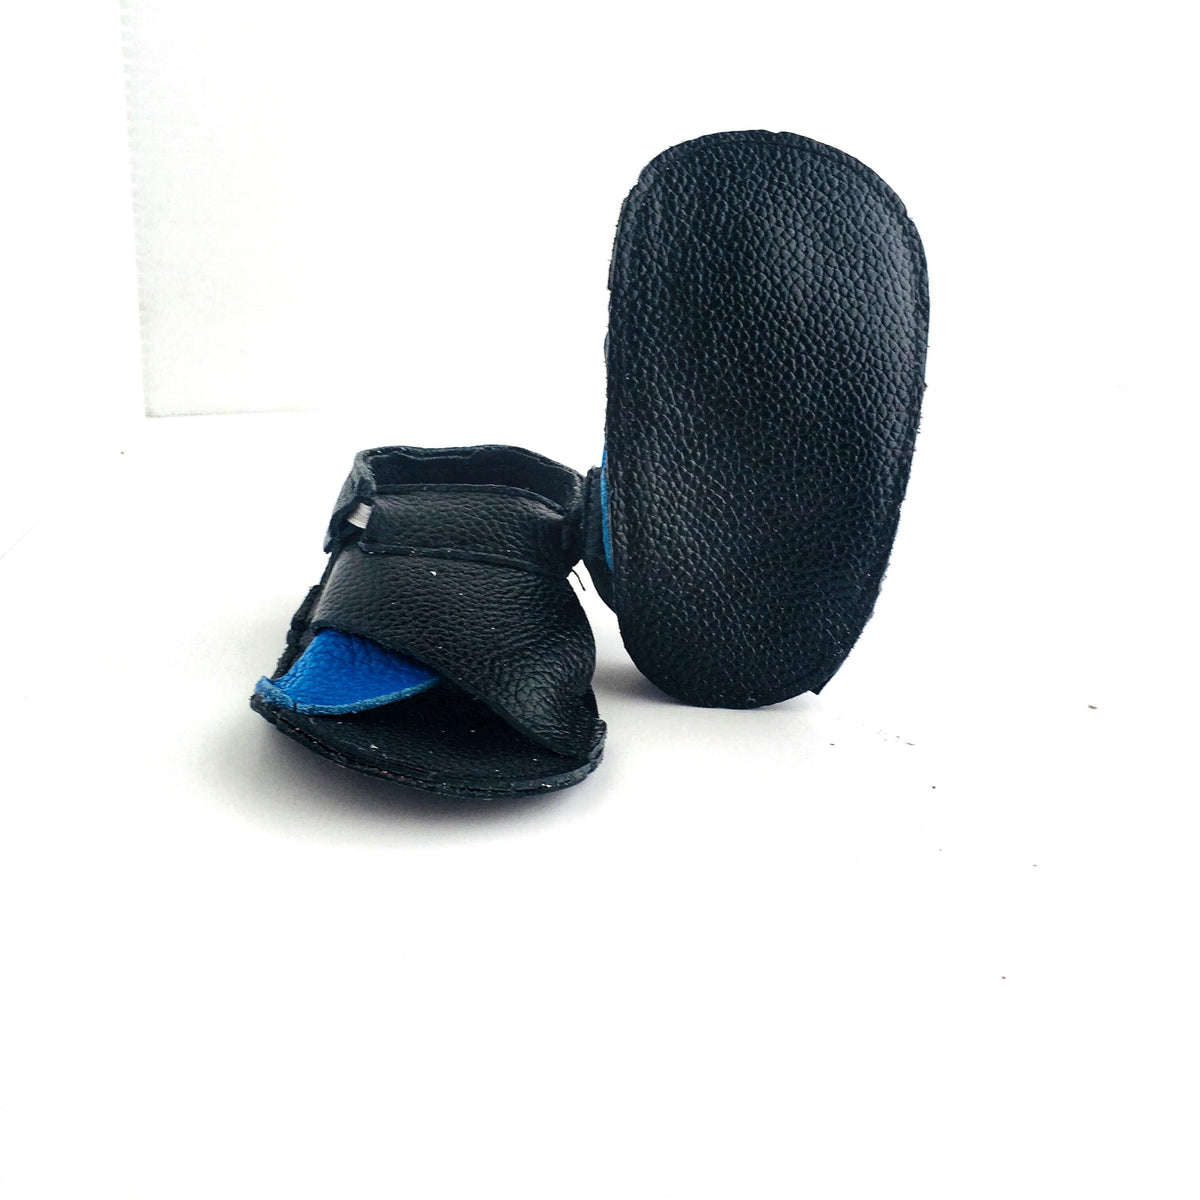 Cross Soft Sole Sandal Sole View Blue Black